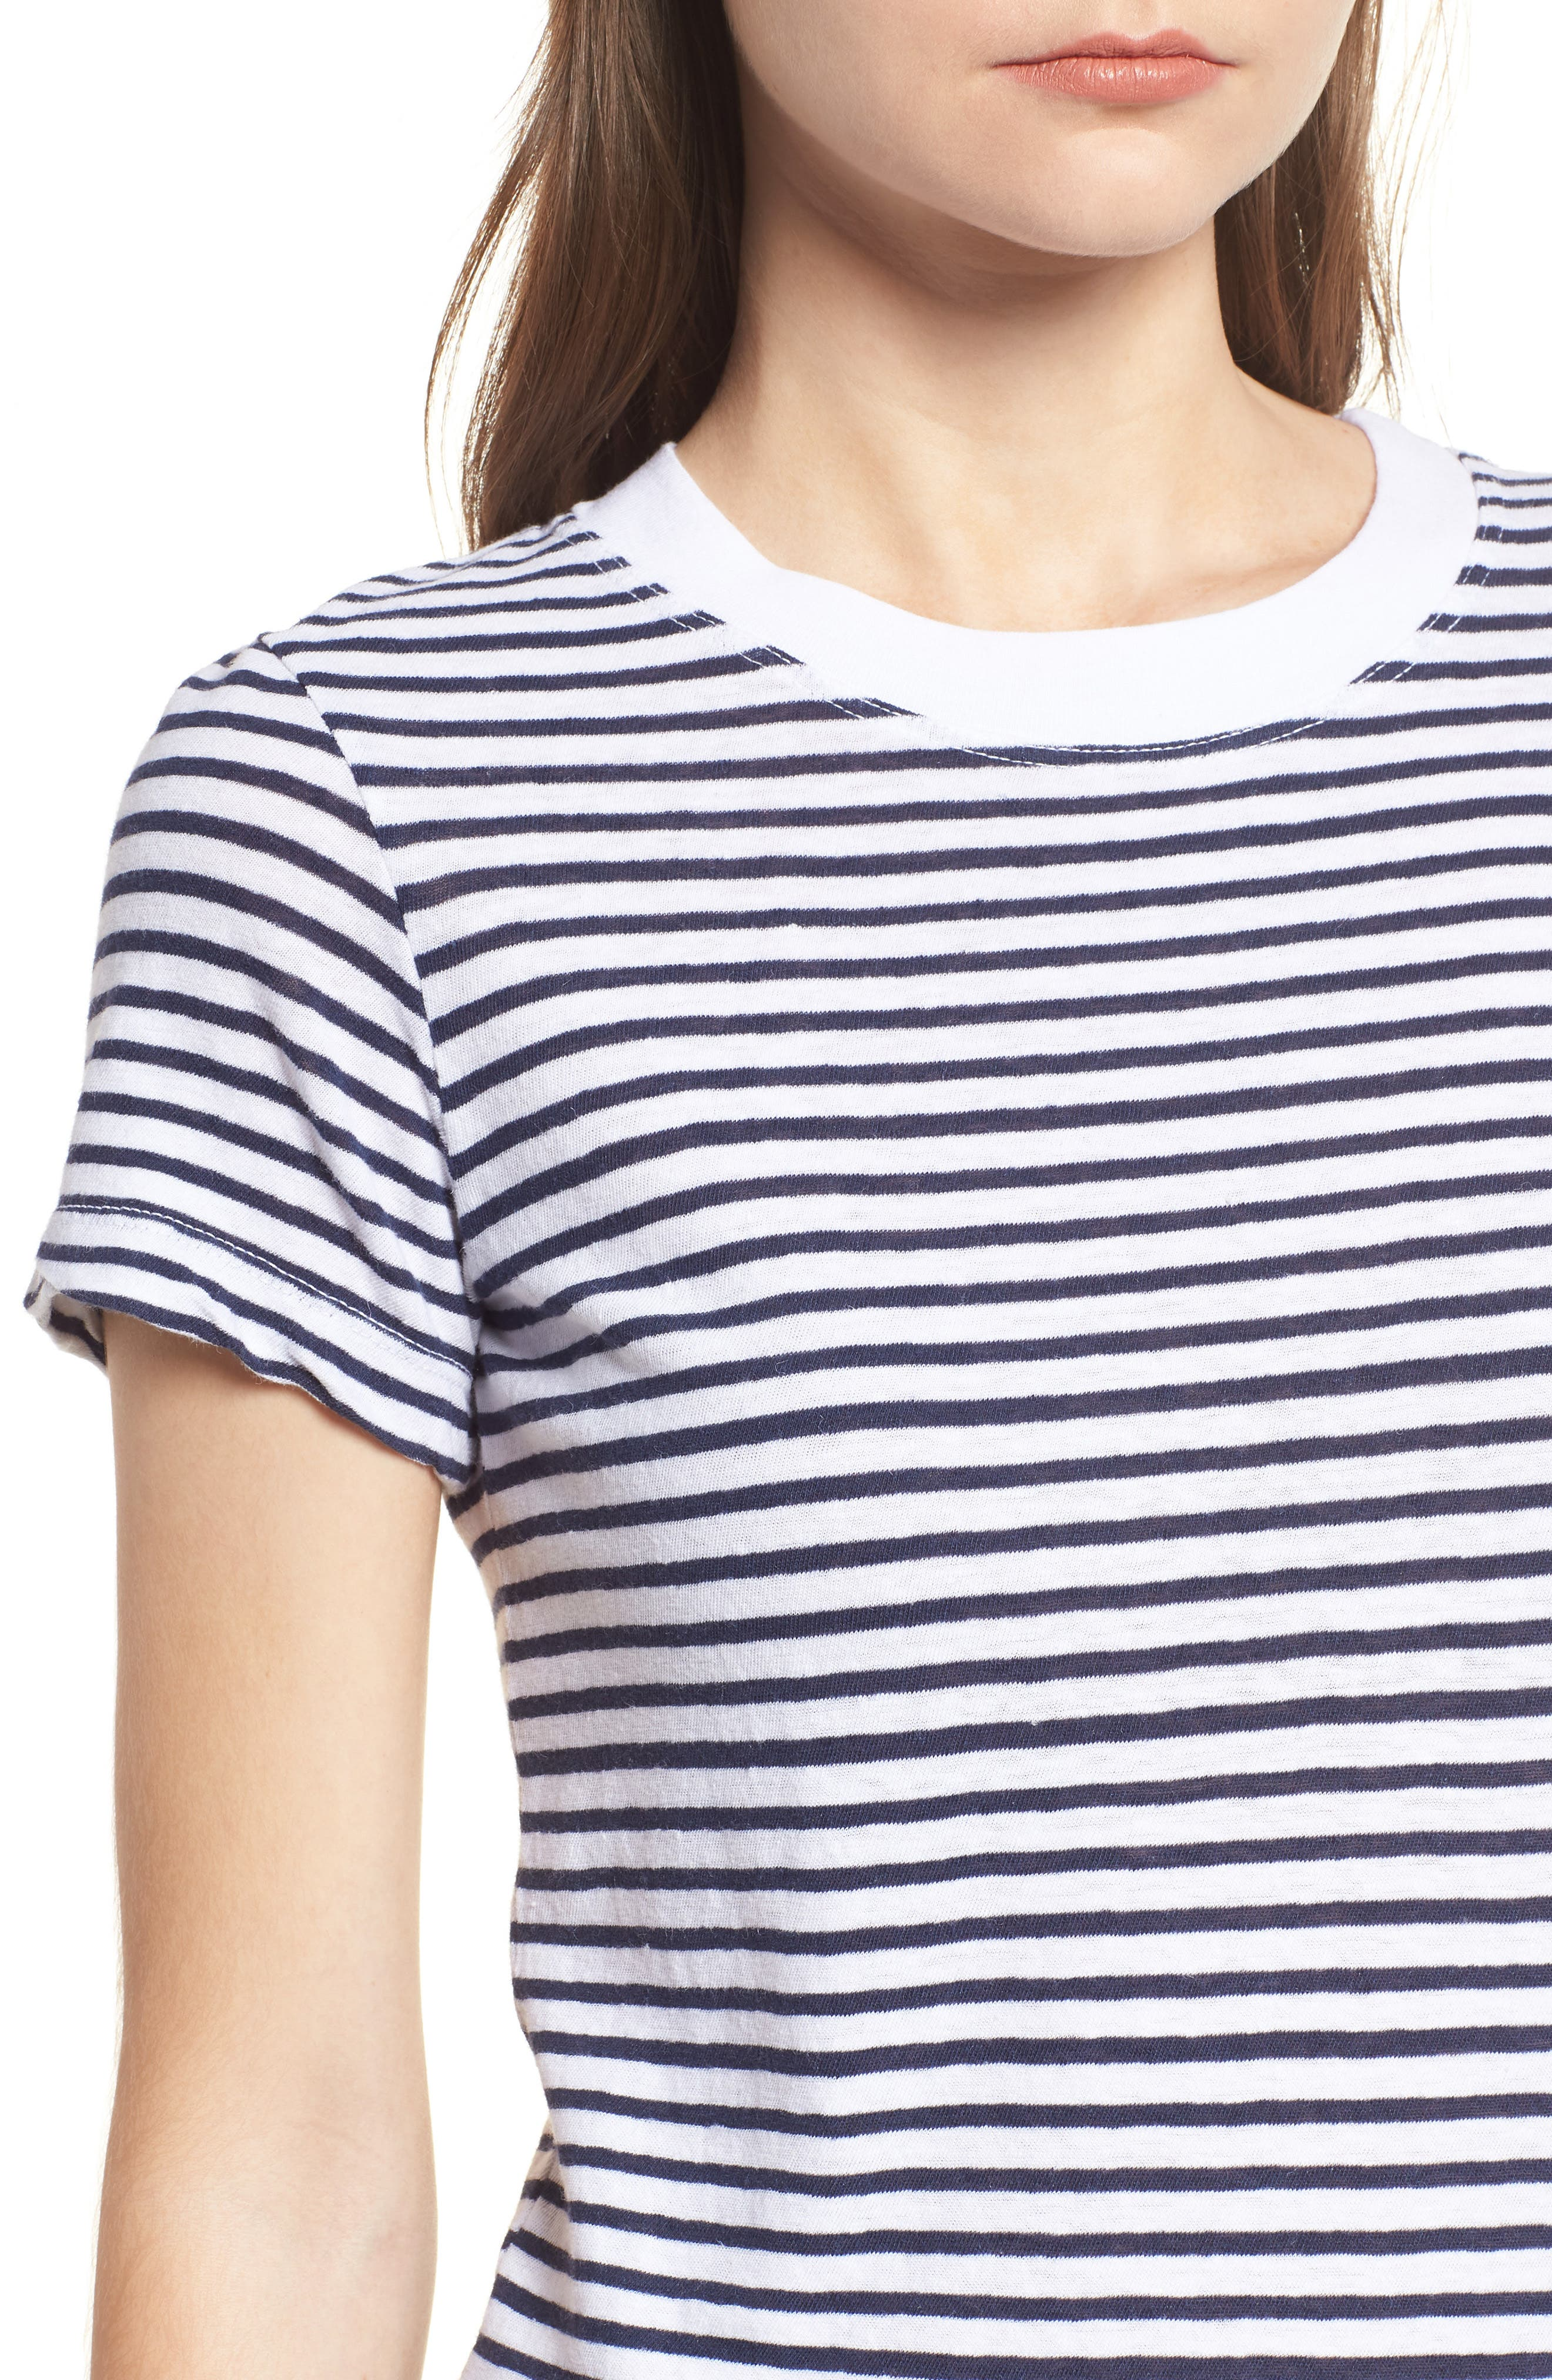 Stripe Linen Blend Boy Tee,                             Alternate thumbnail 4, color,                             Navy/ White